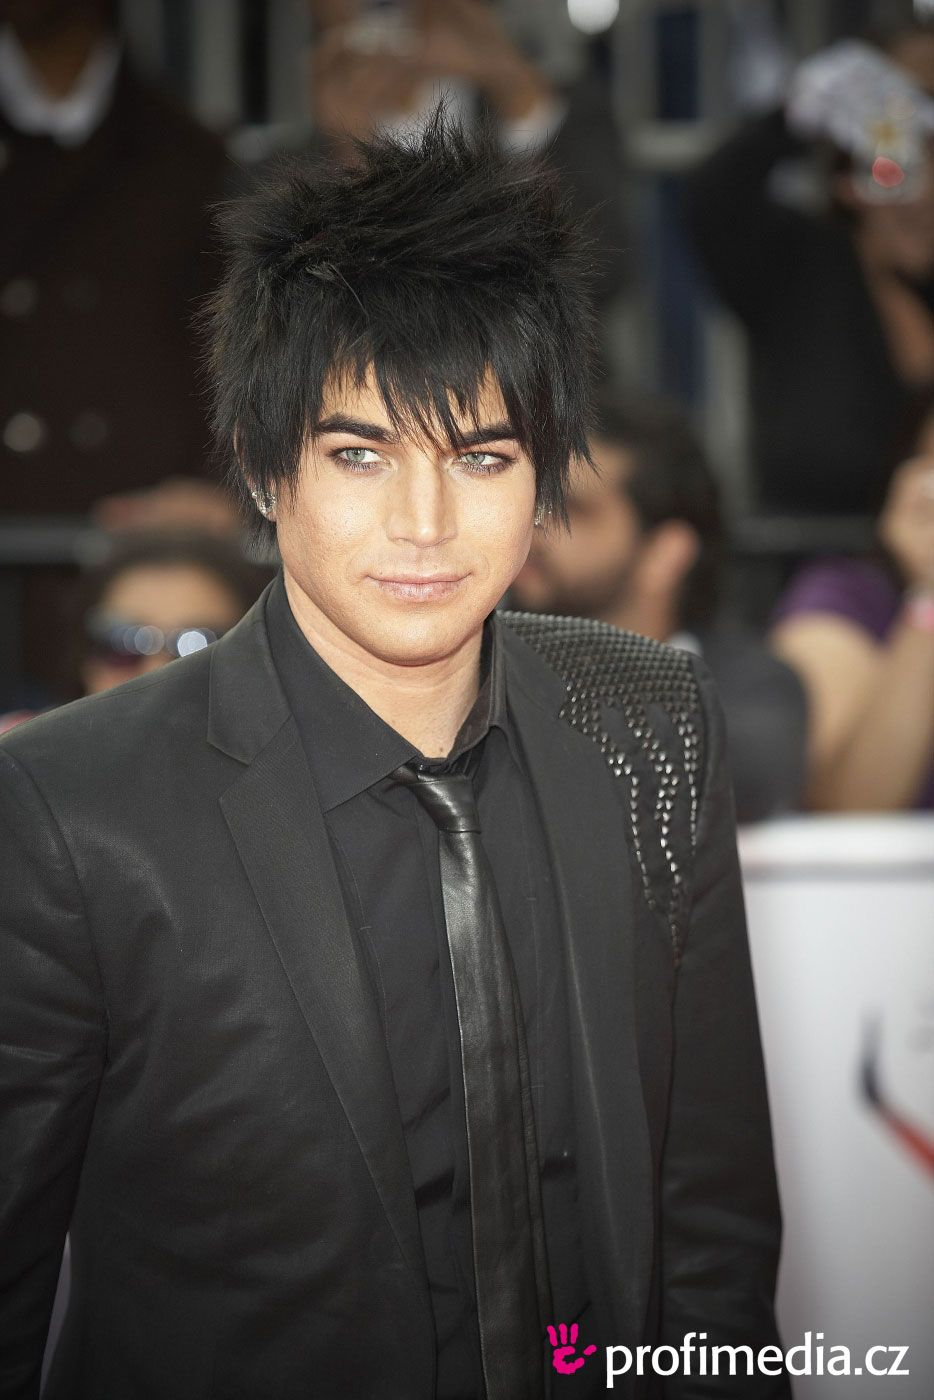 Fashion week Lamberts Adam emo hair style pictures for girls